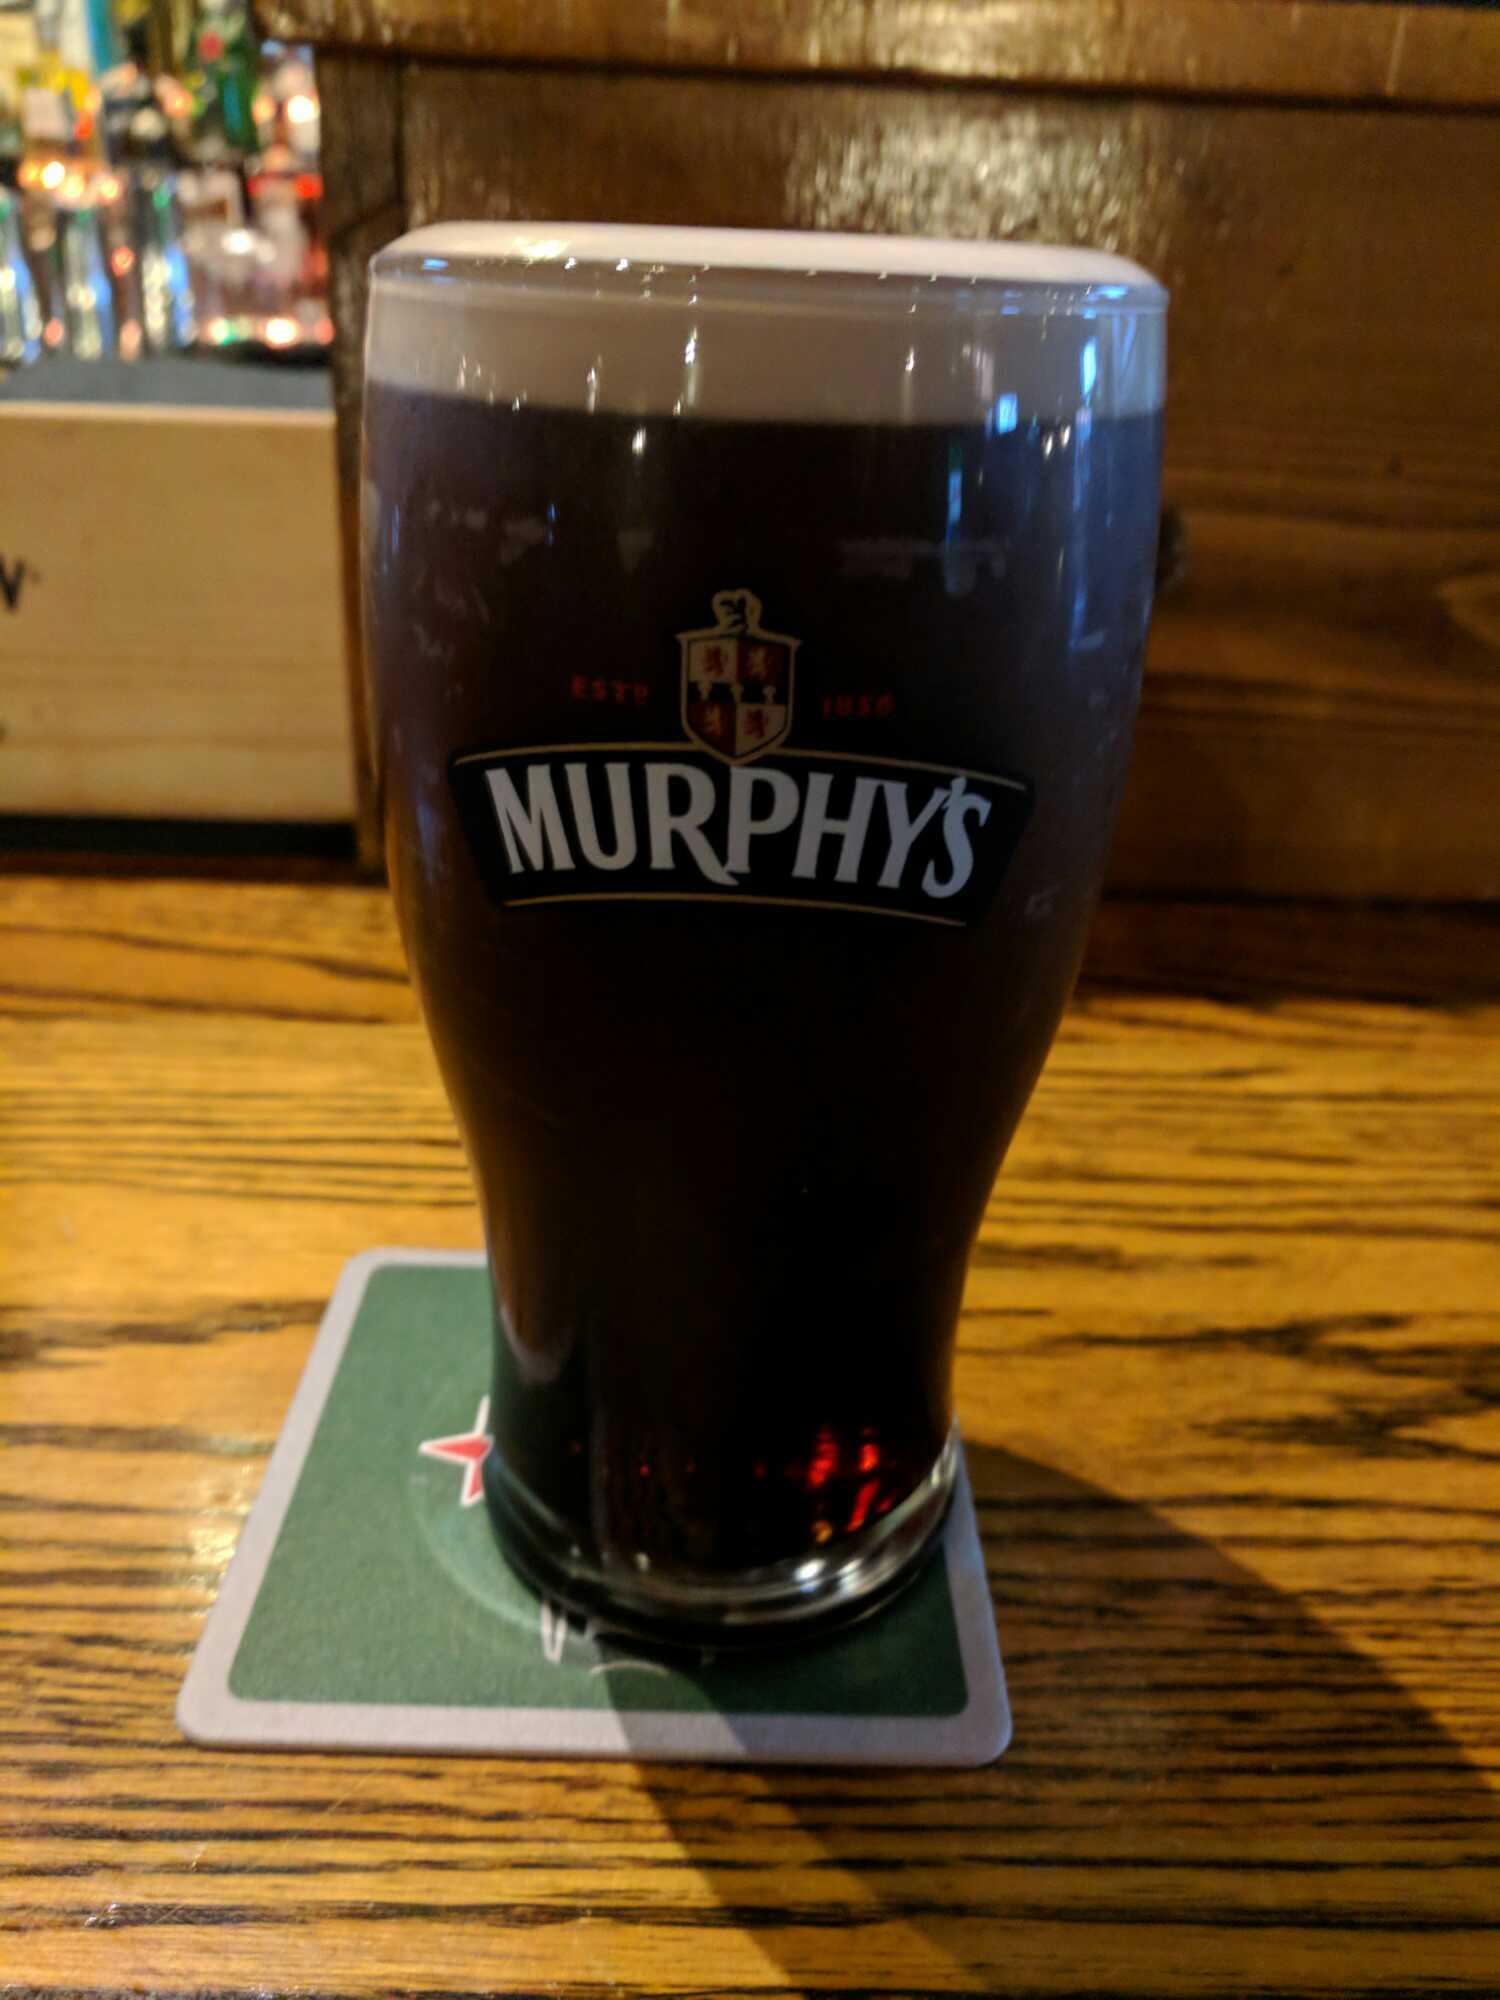 January 20, 2018 Heineken Ireland - Murphy's Irish Stout